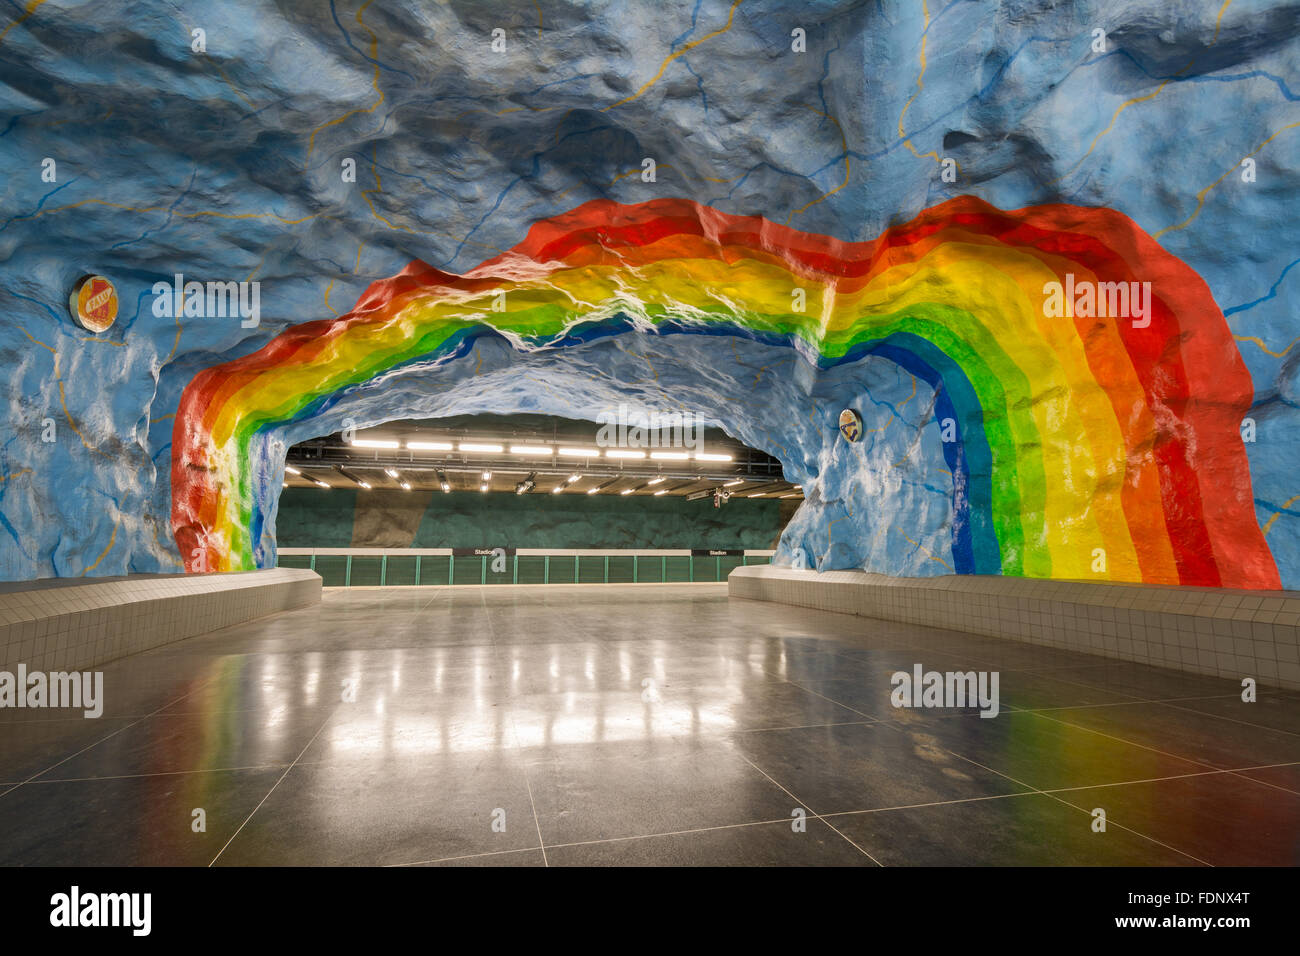 Giant colourful rainbow painted on the walls of Stadion Underground Station in Stockholm. - Stock Image